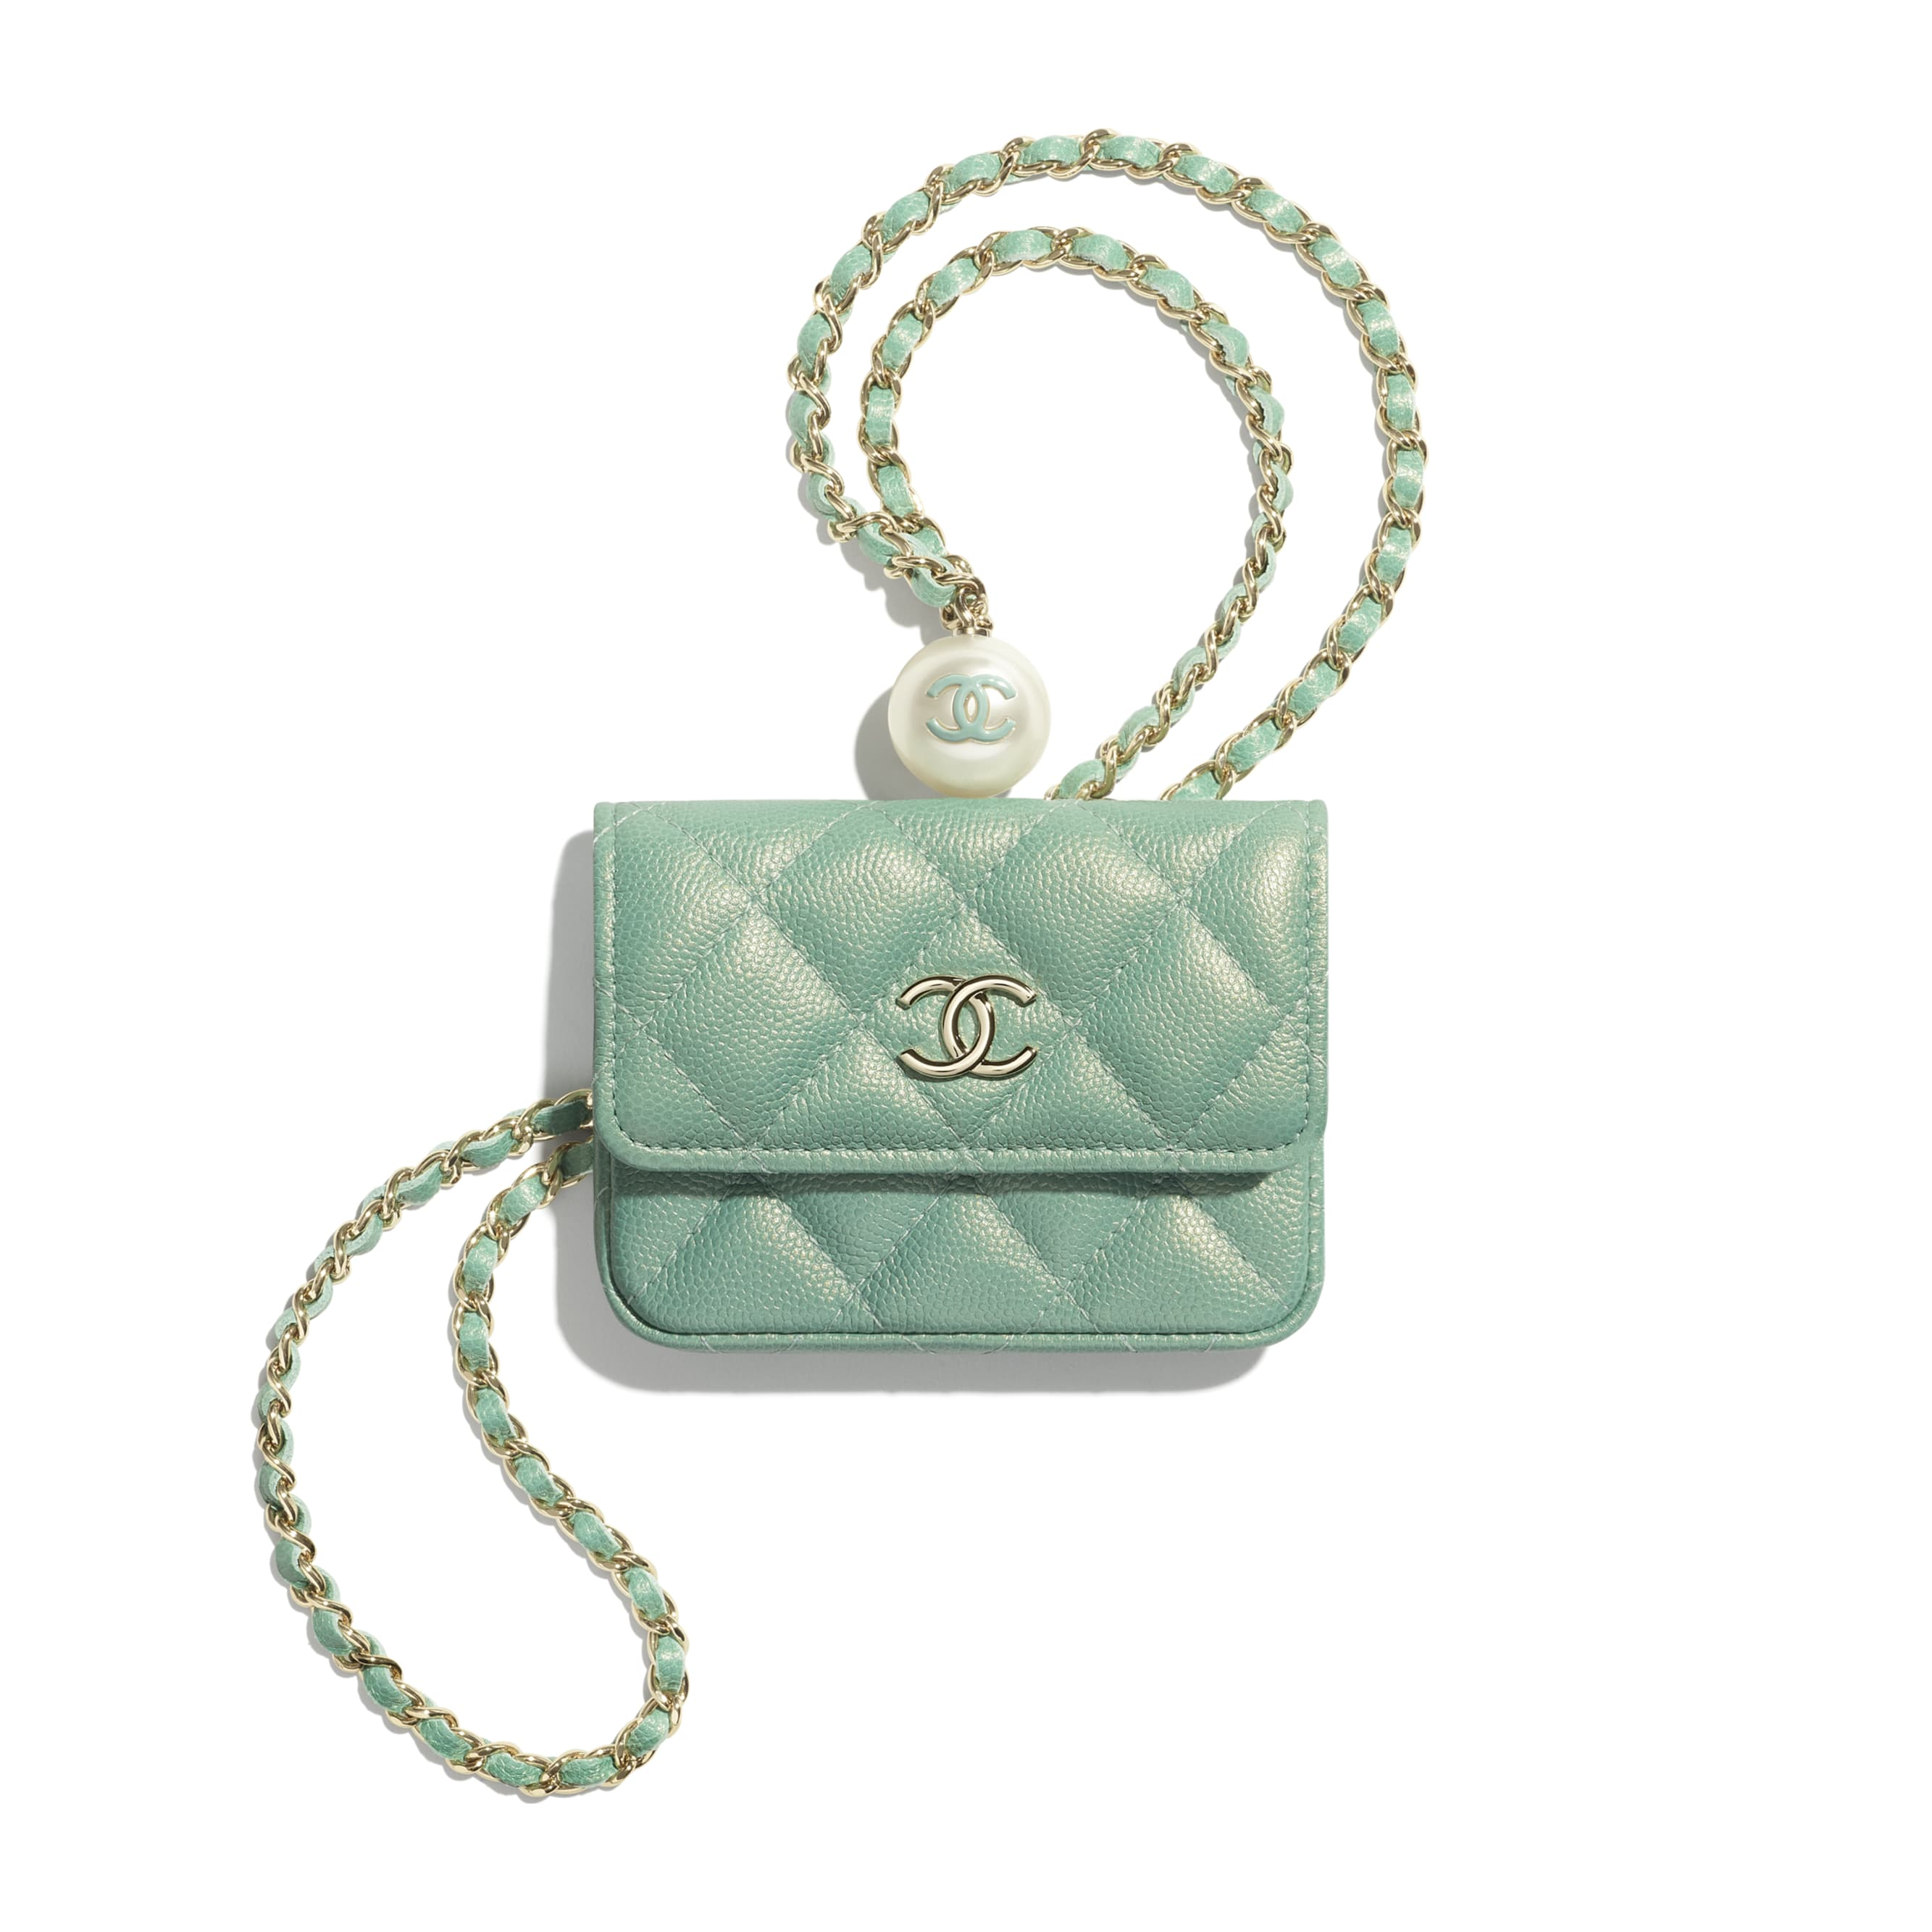 Flap Coin Purse with Chain - Green - Iridescent Grained Calfskin, Imitation Pearls & Gold-Tone Metal - CHANEL - Default view - see standard sized version